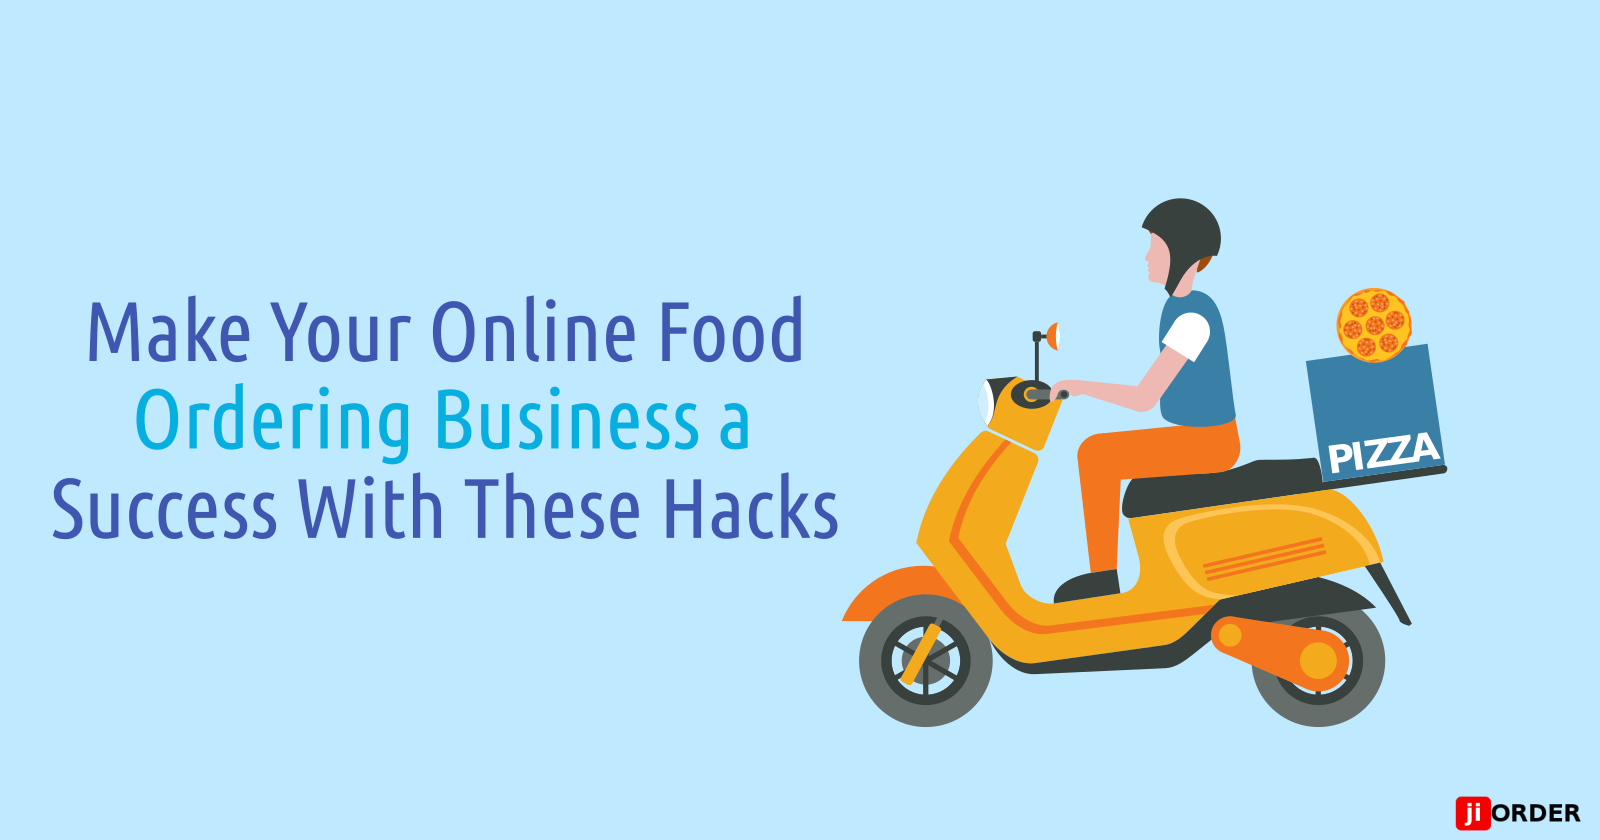 Make Your Online Food Ordering Business a Success With These Hacks